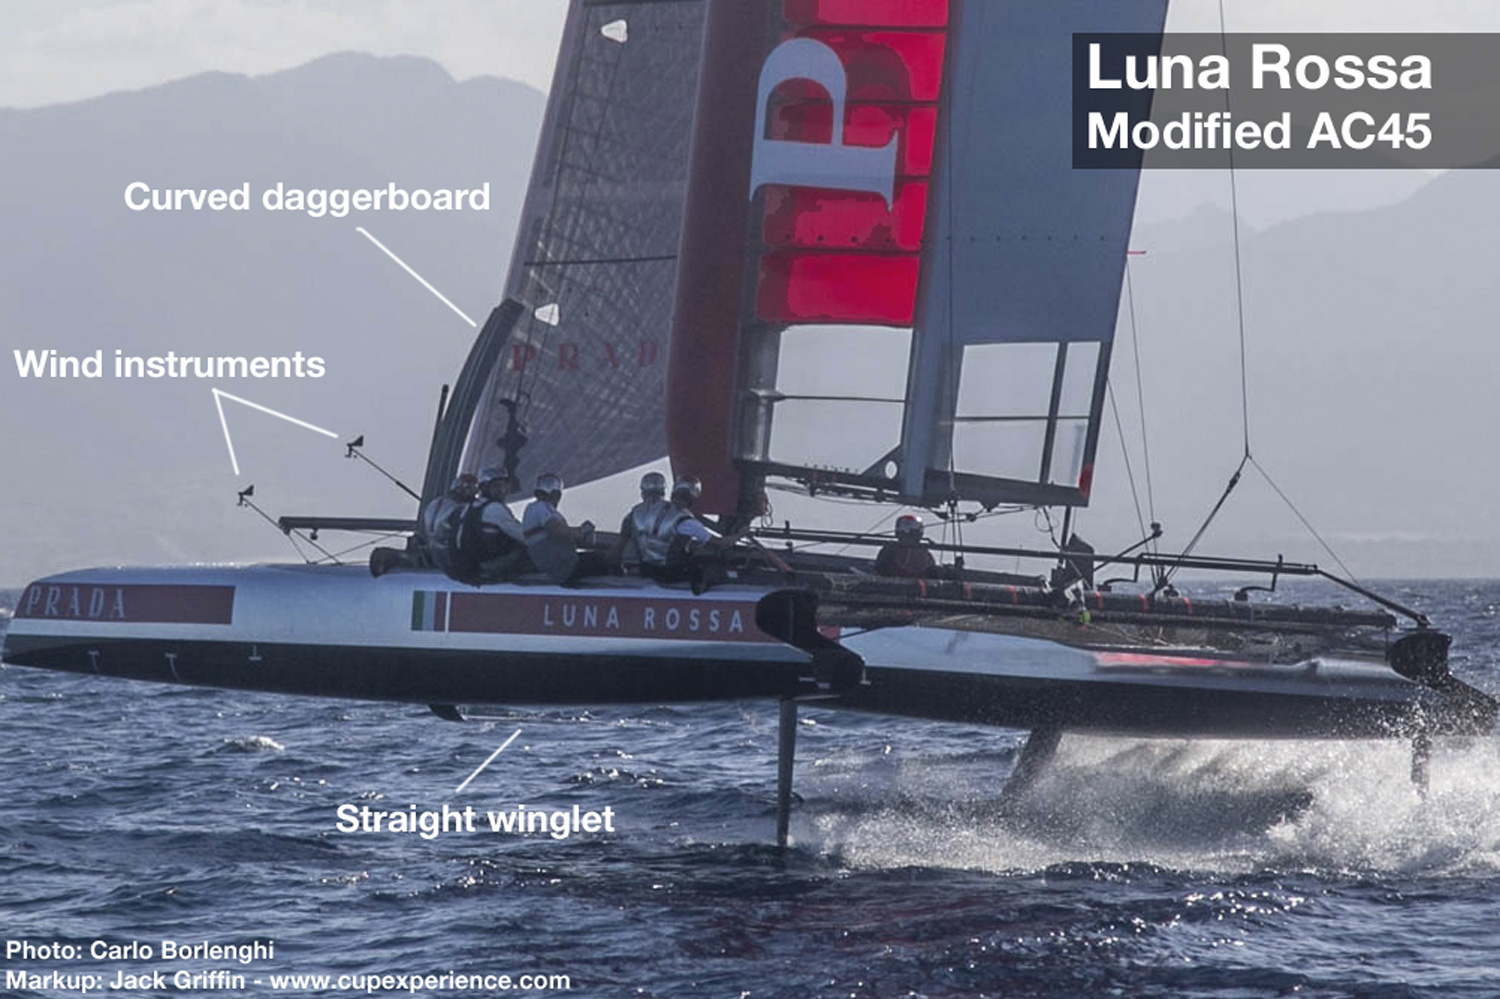 Luna Rossa has modified two AC45s for testing